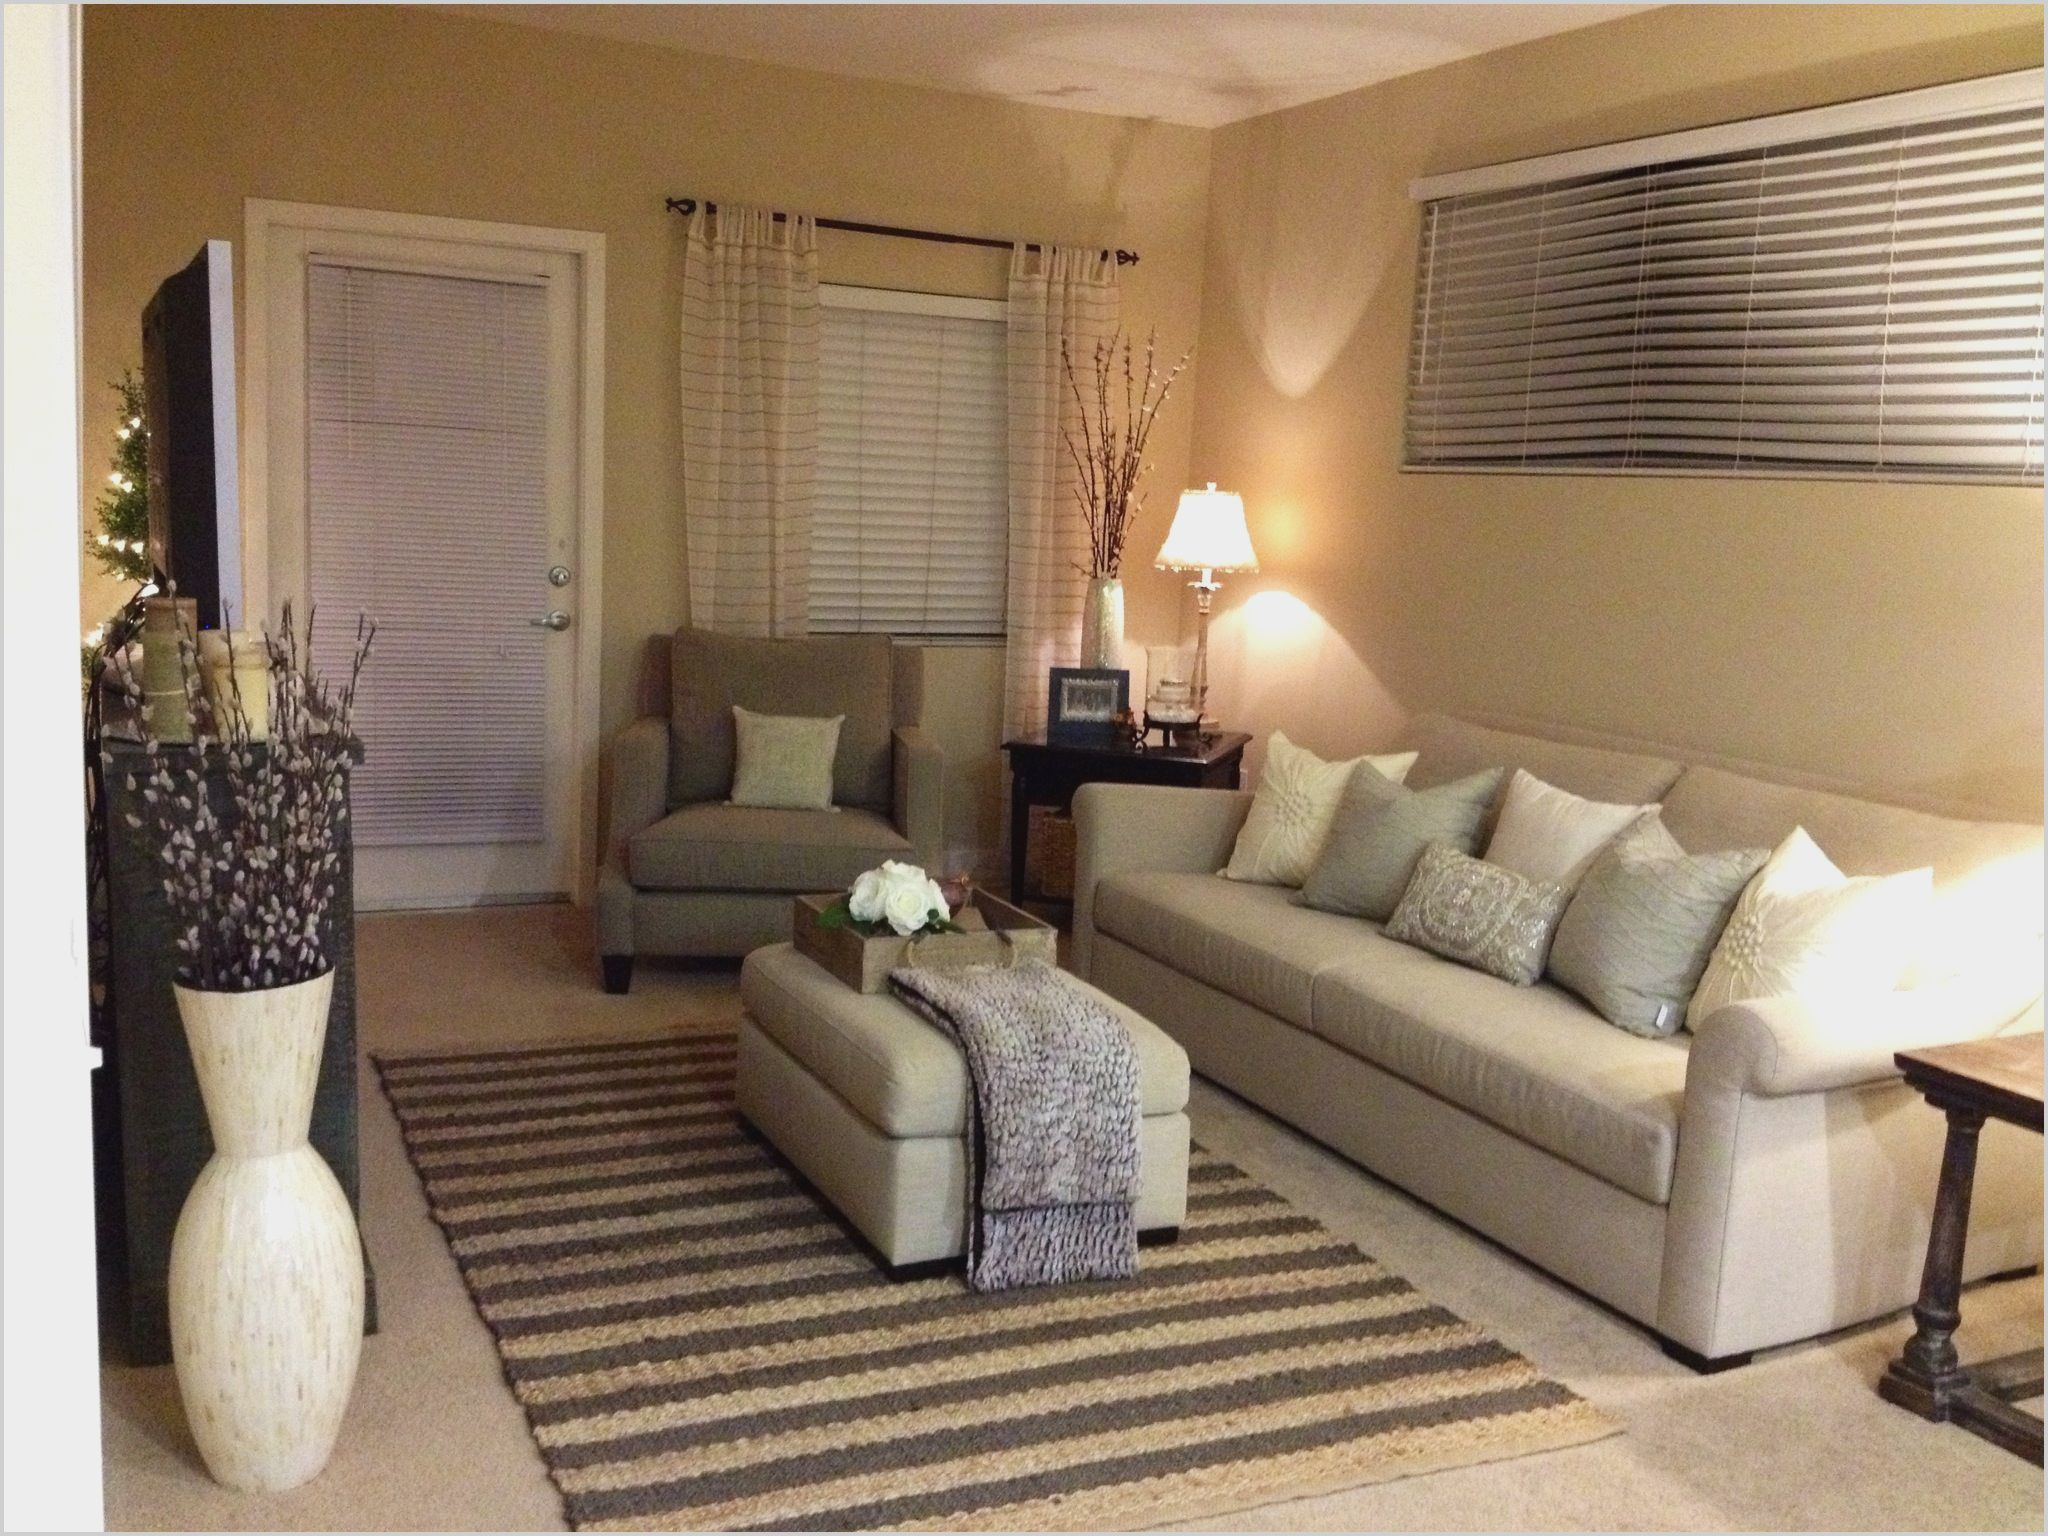 Bedroom Layout Ideas For Small Rectangular Rooms In 2020 Rectangular Living Rooms Small Living Room Decor Small Living Rooms